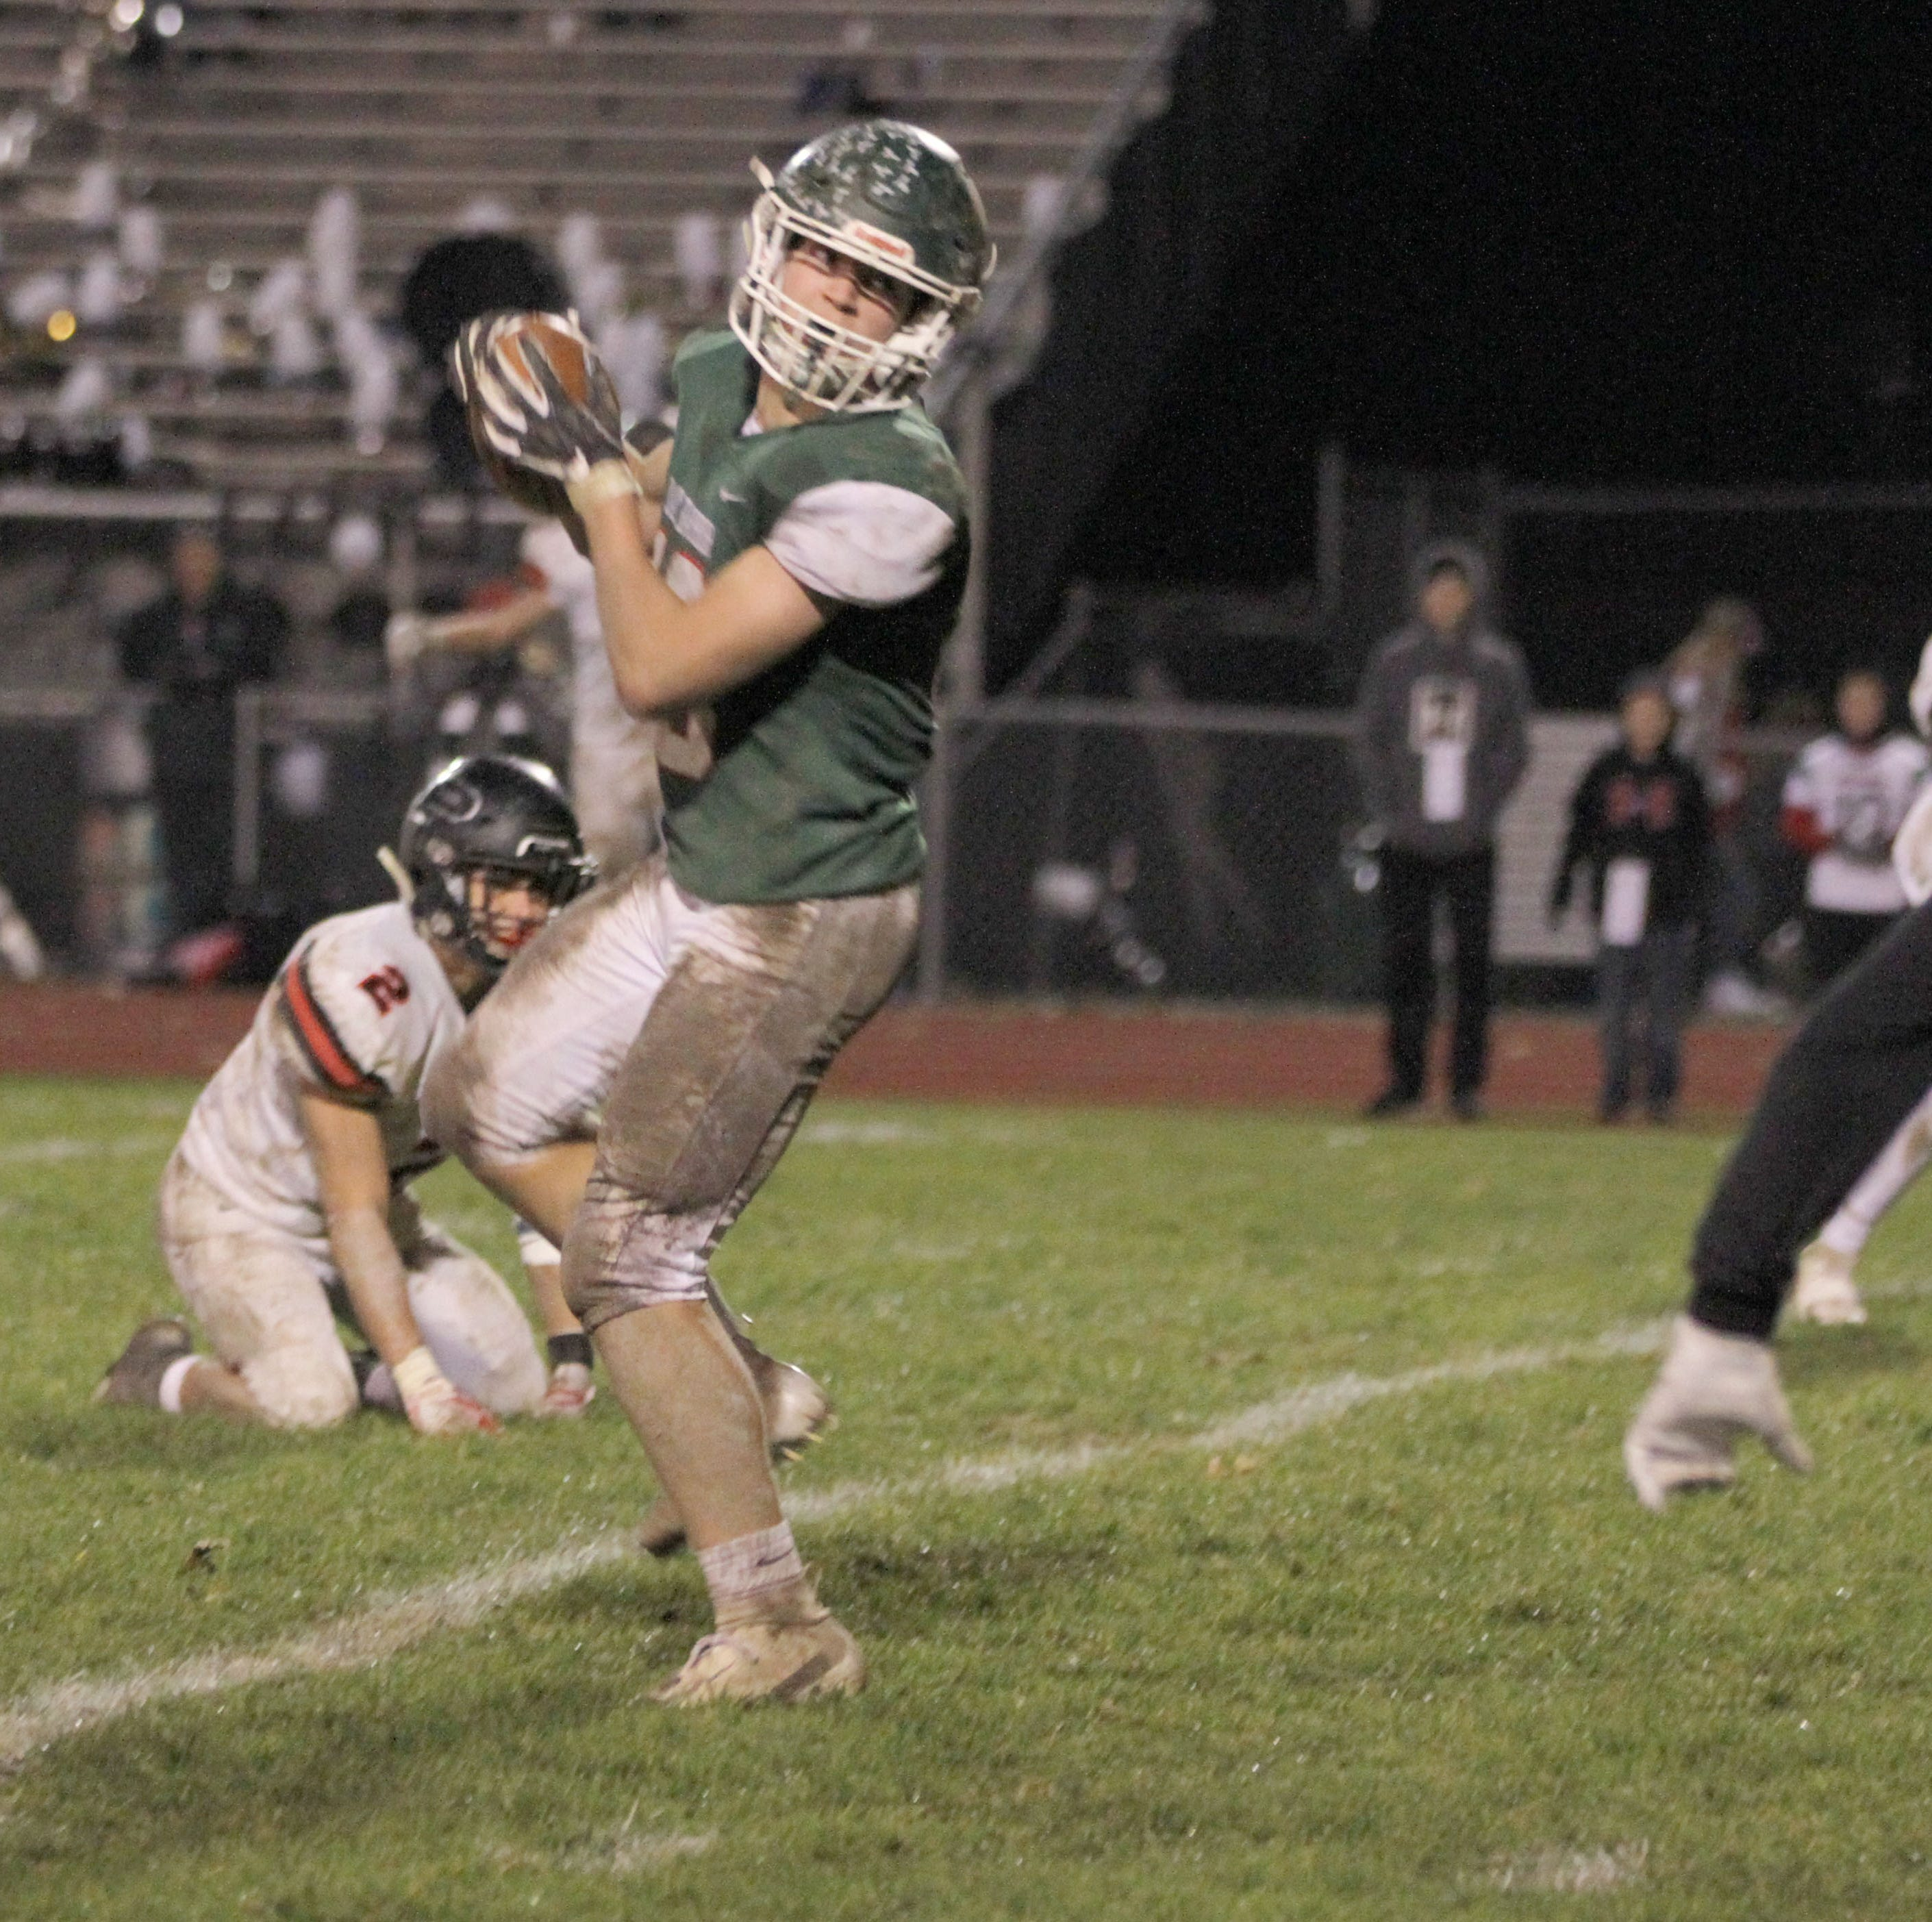 Game Changer: Oak Harbor linebacker Ridener has two touchdowns on three catches